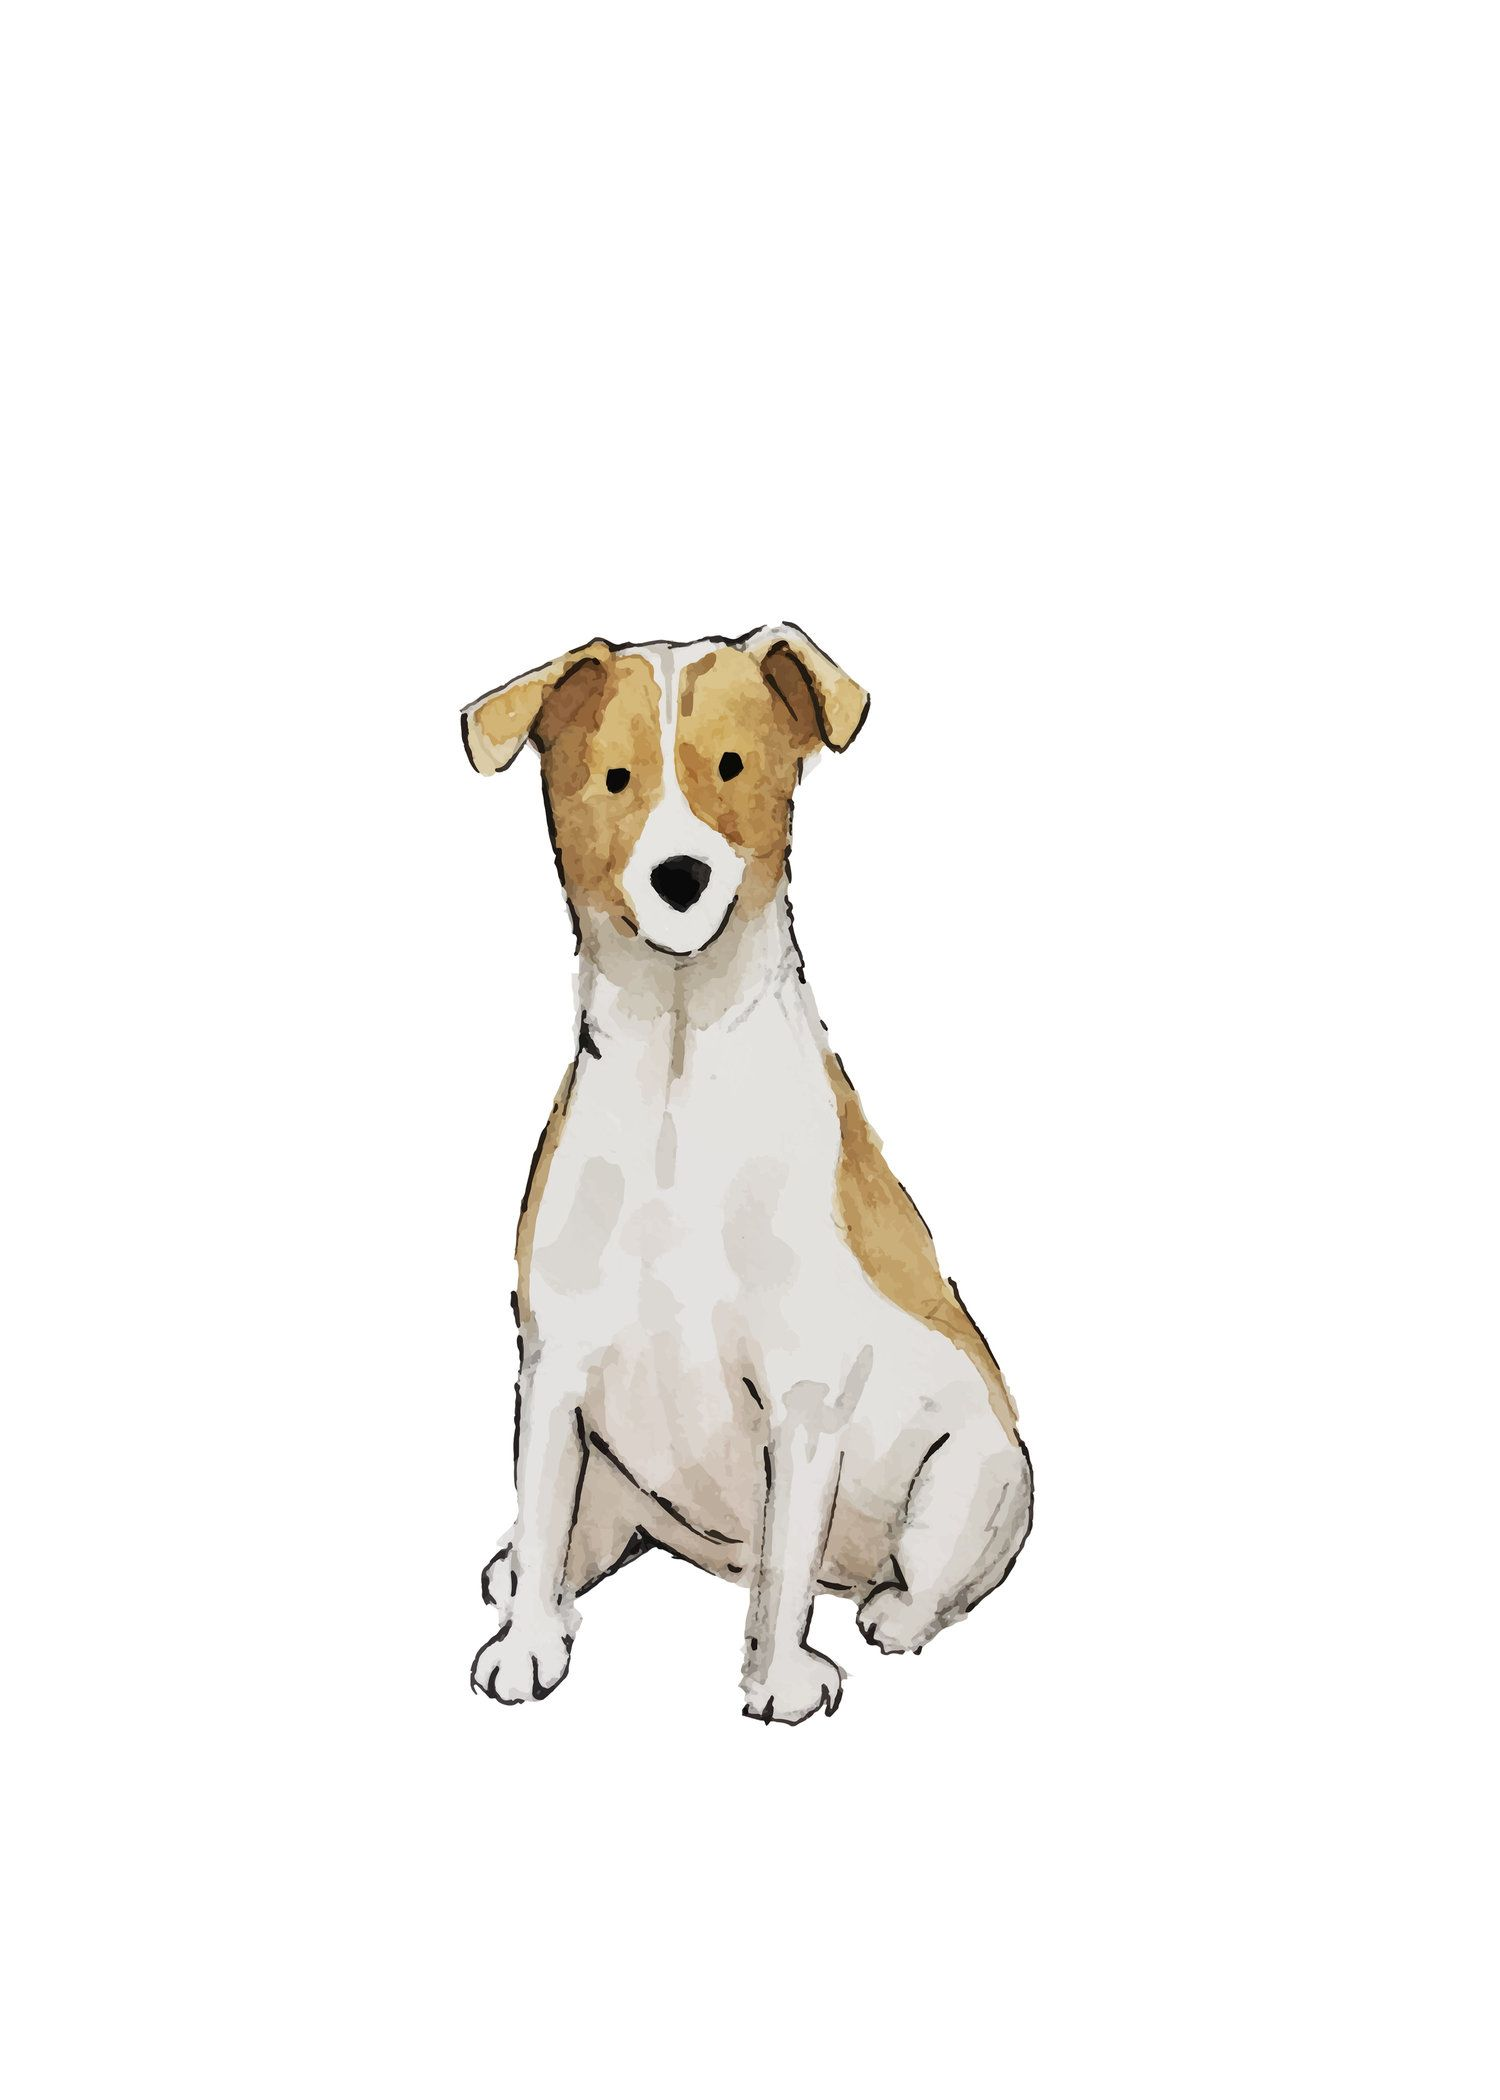 Jack Russell Terrier 5x7.jpg (With images) Ilustration